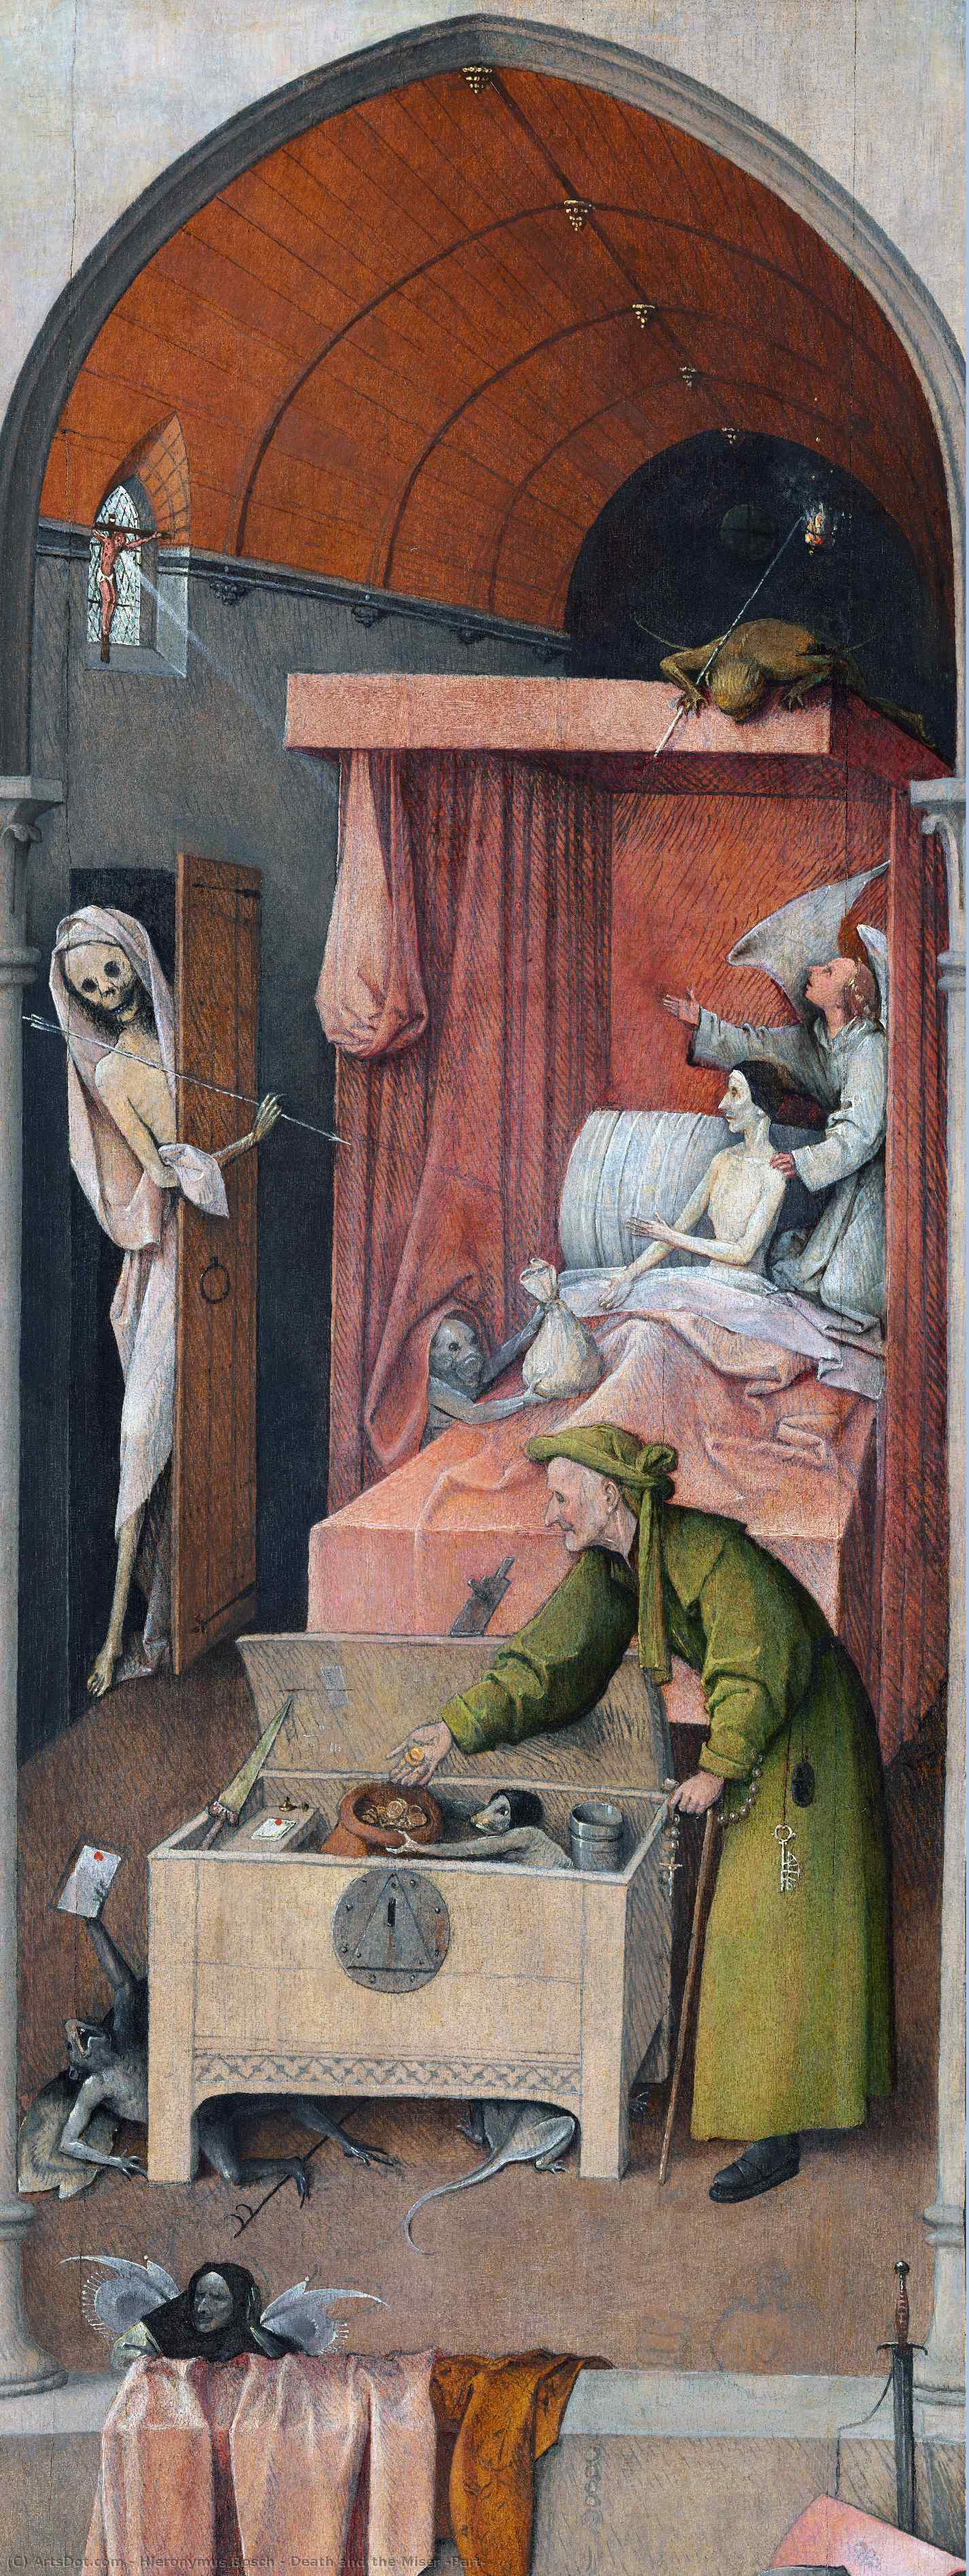 Wikioo.org - The Encyclopedia of Fine Arts - Painting, Artwork by Hieronymus Bosch - Death and the Miser (Part)